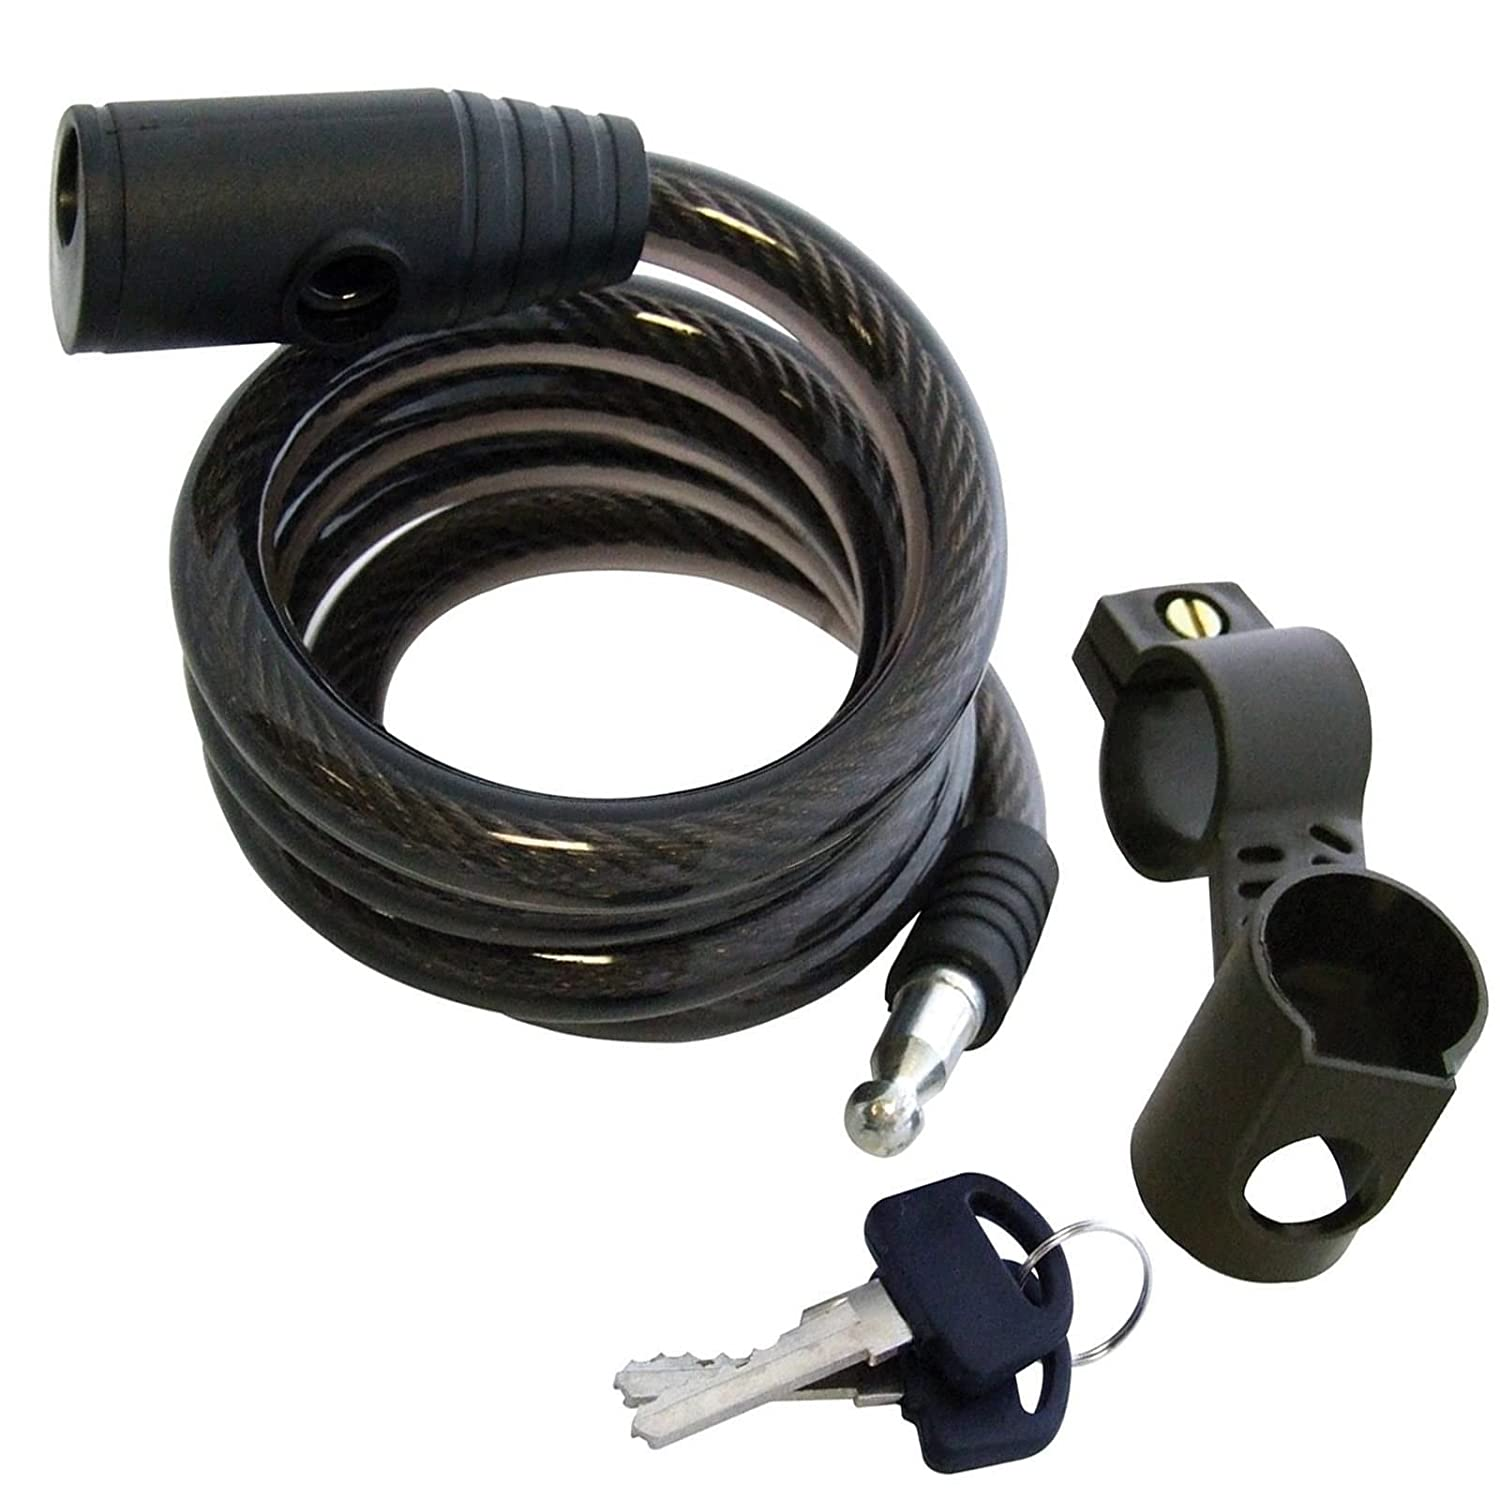 Tech Traders Bicycle Cable Bike Lock, Black, 120 cm x 1200 mm